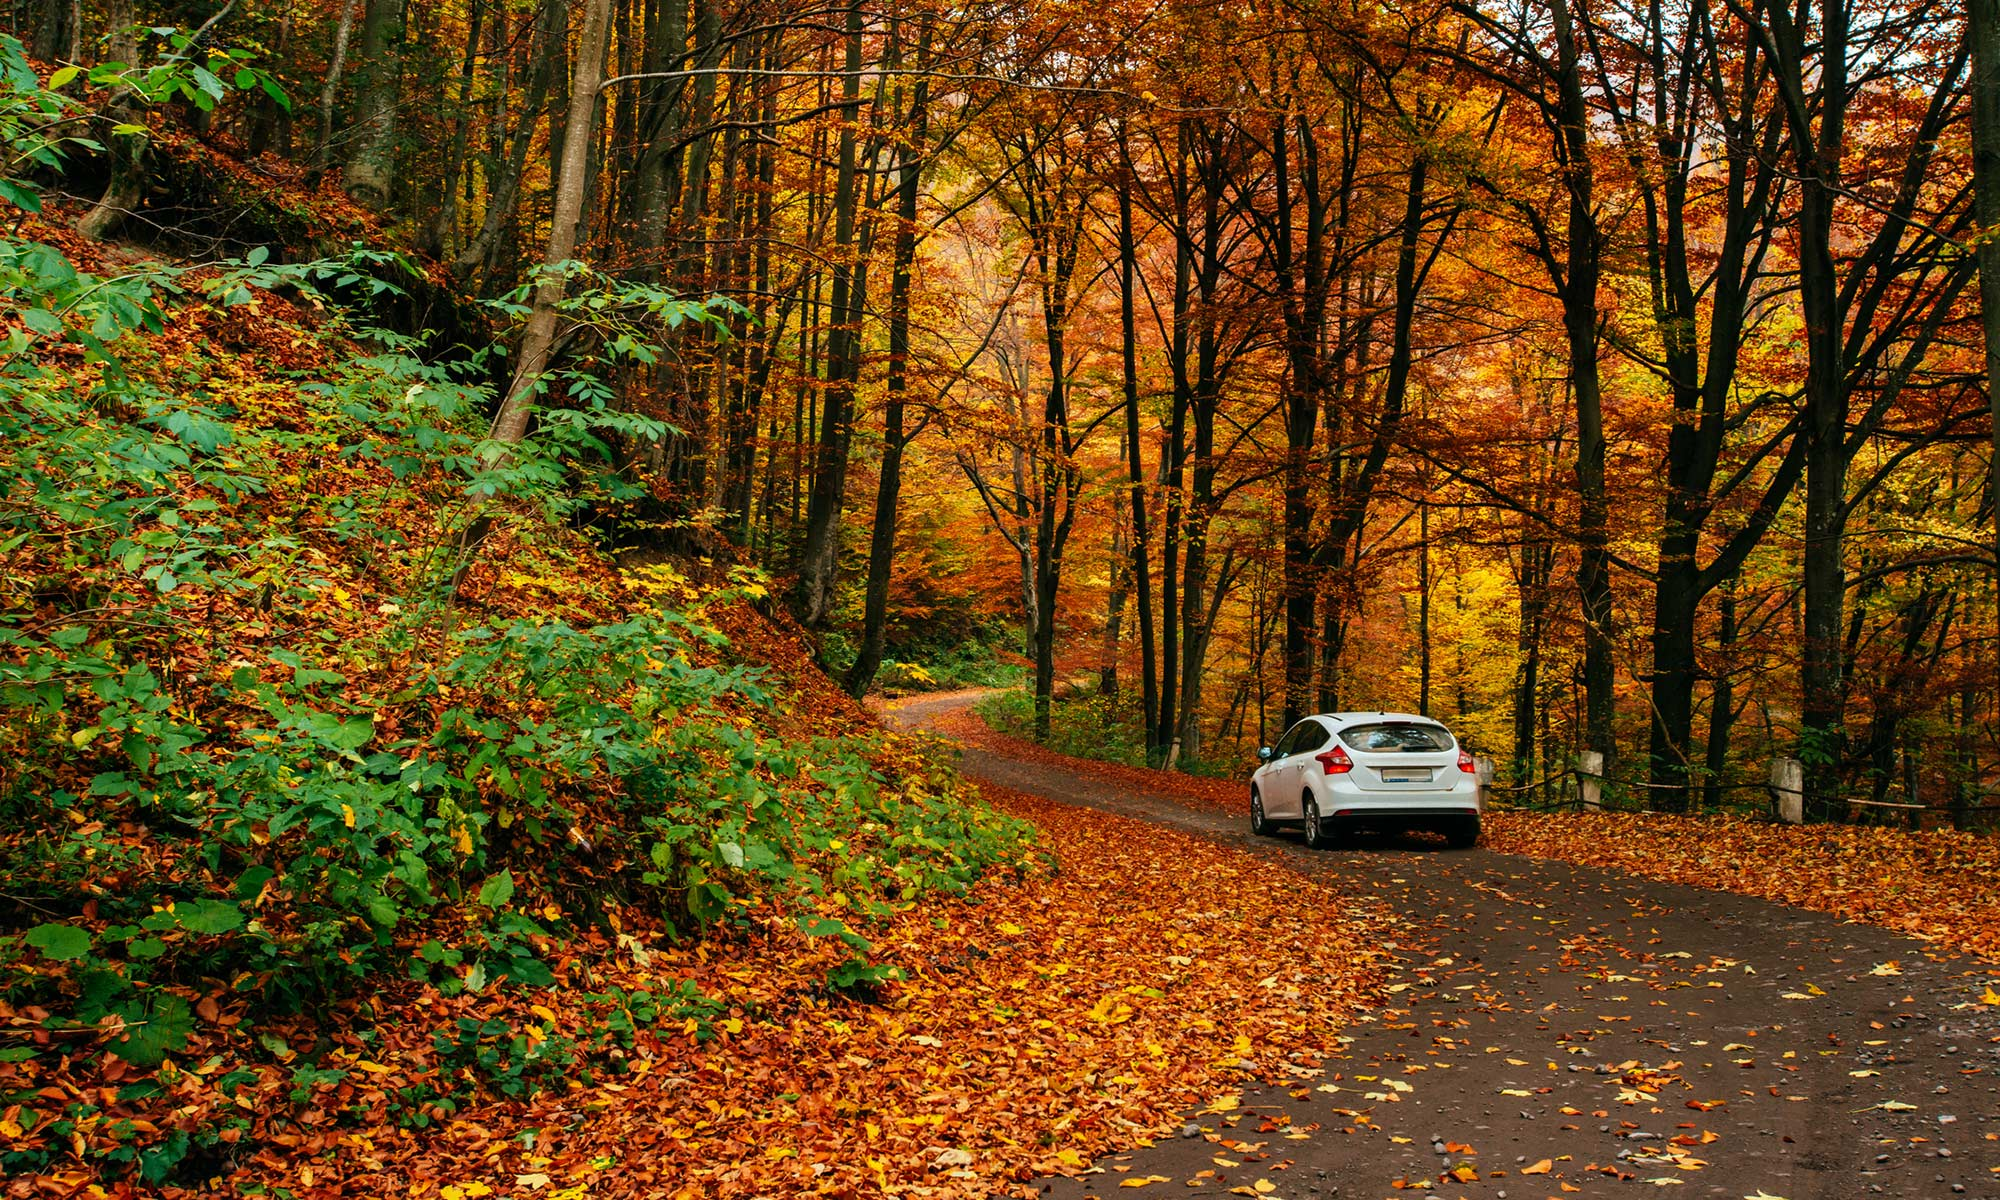 A car driving in the fall.